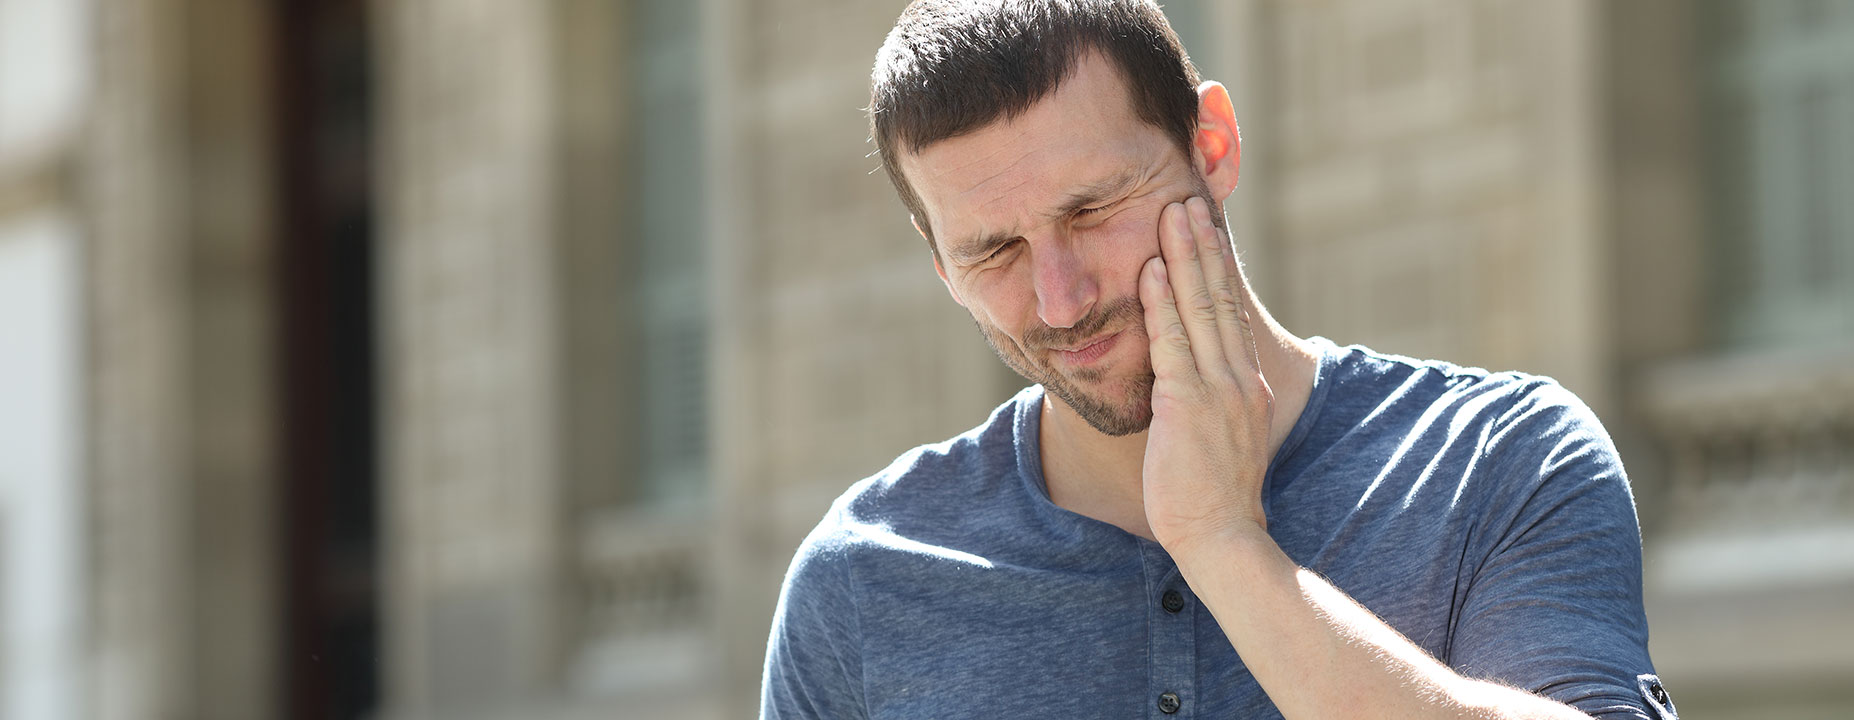 Man suffering toothache in the street